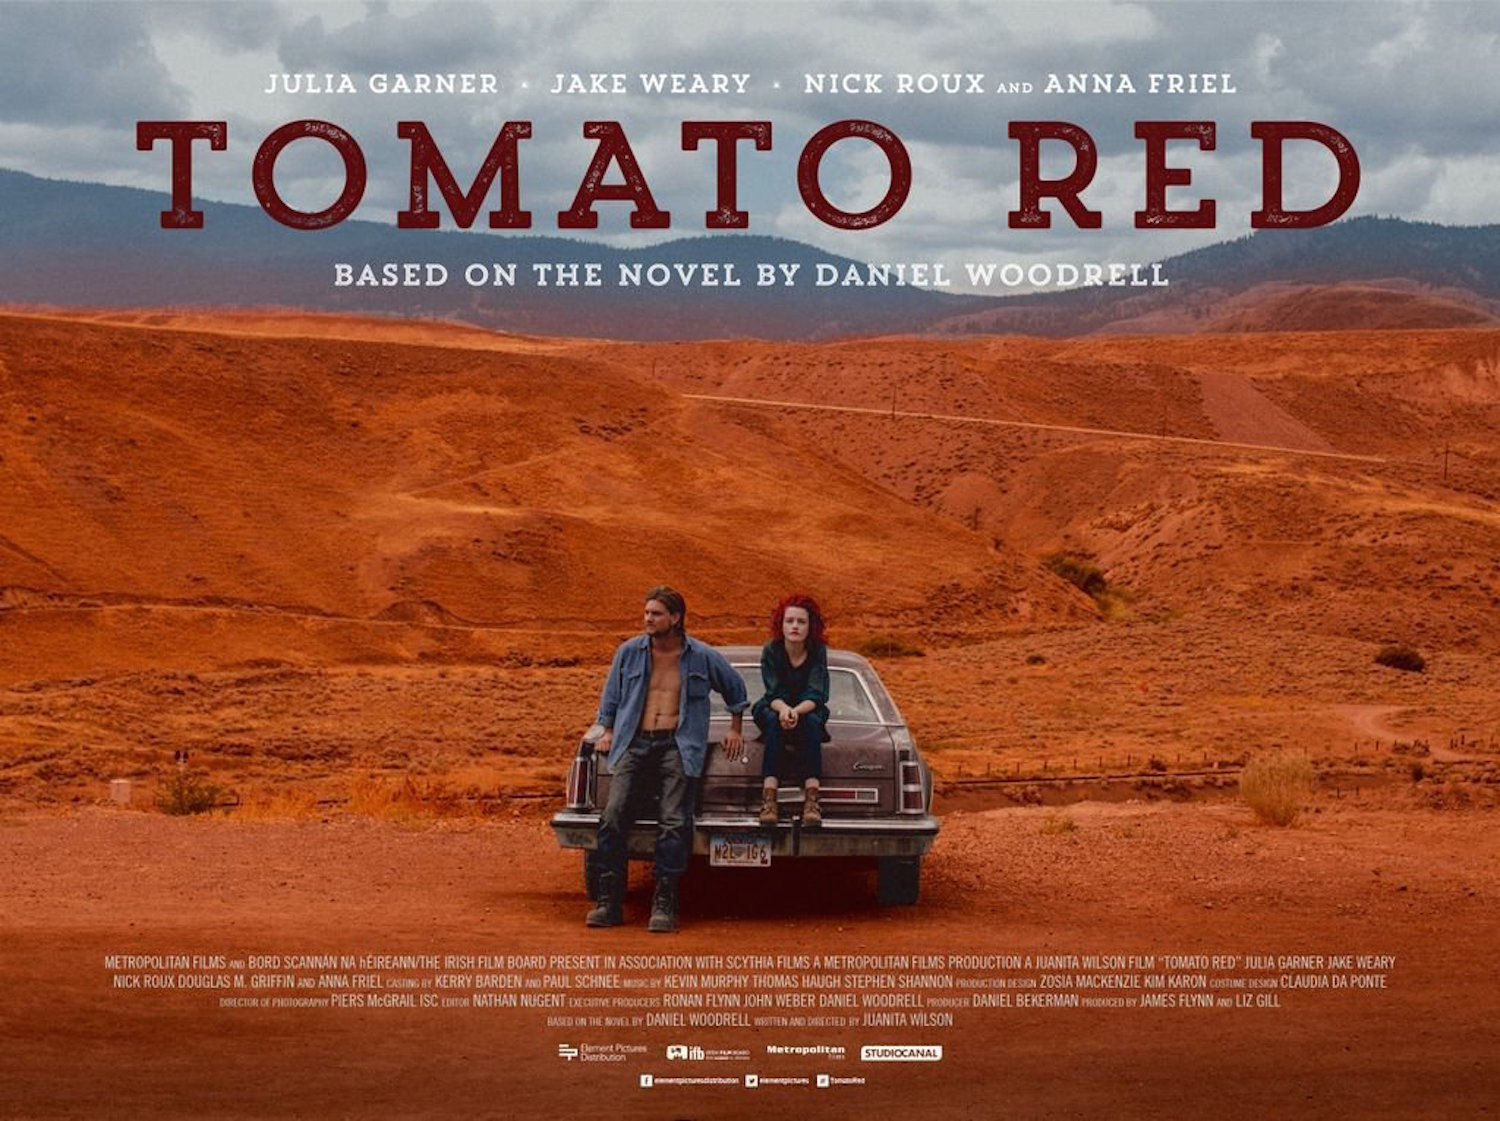 Tomato Red Film Poster Sound Design